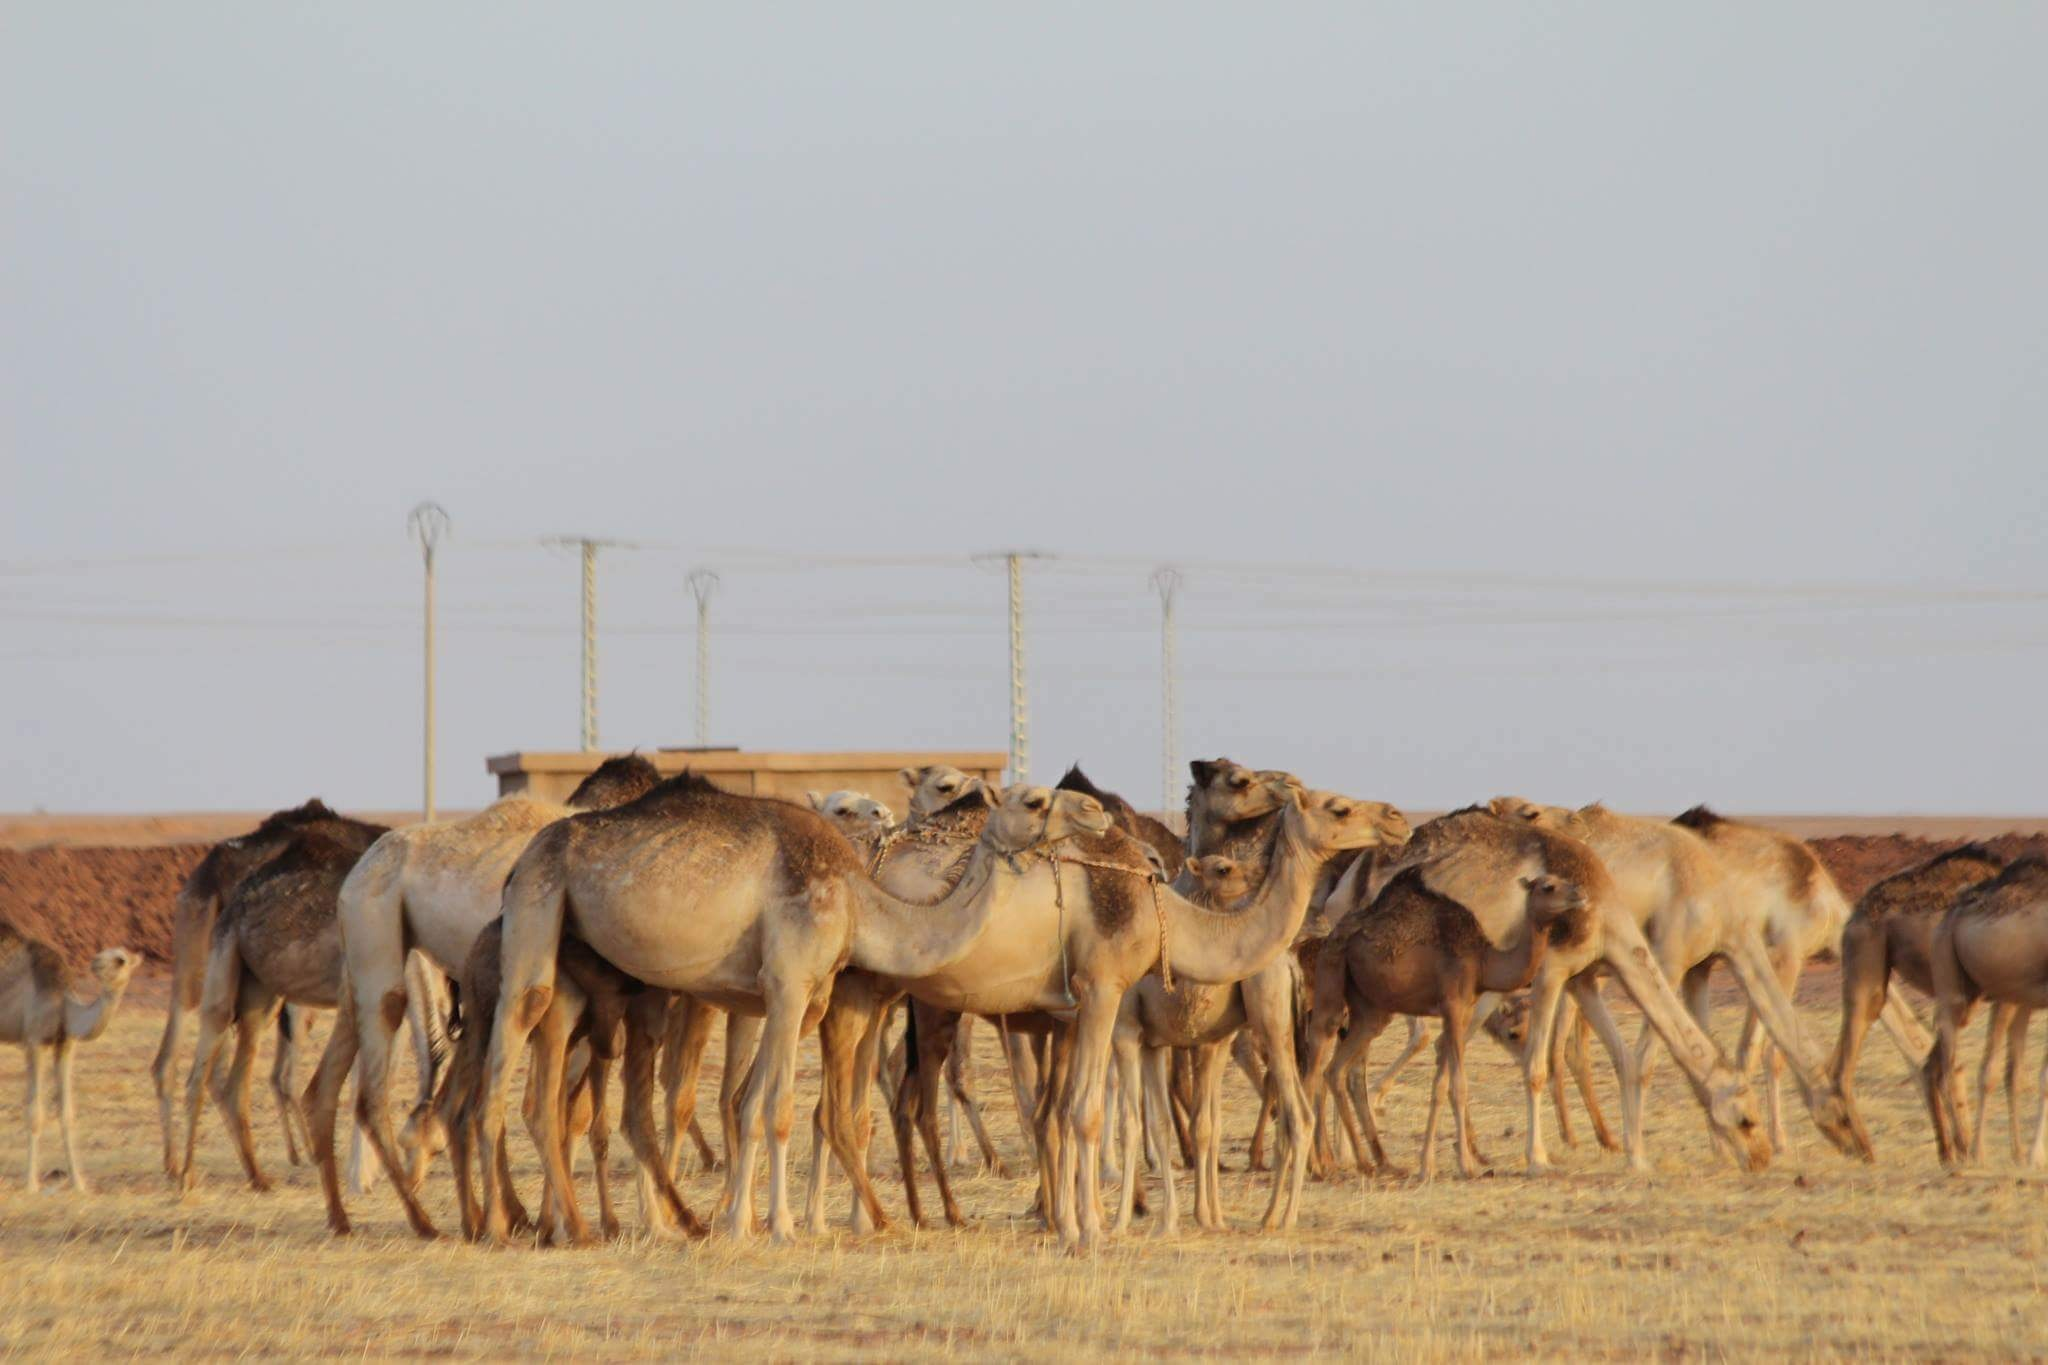 camels  by Taha4ever